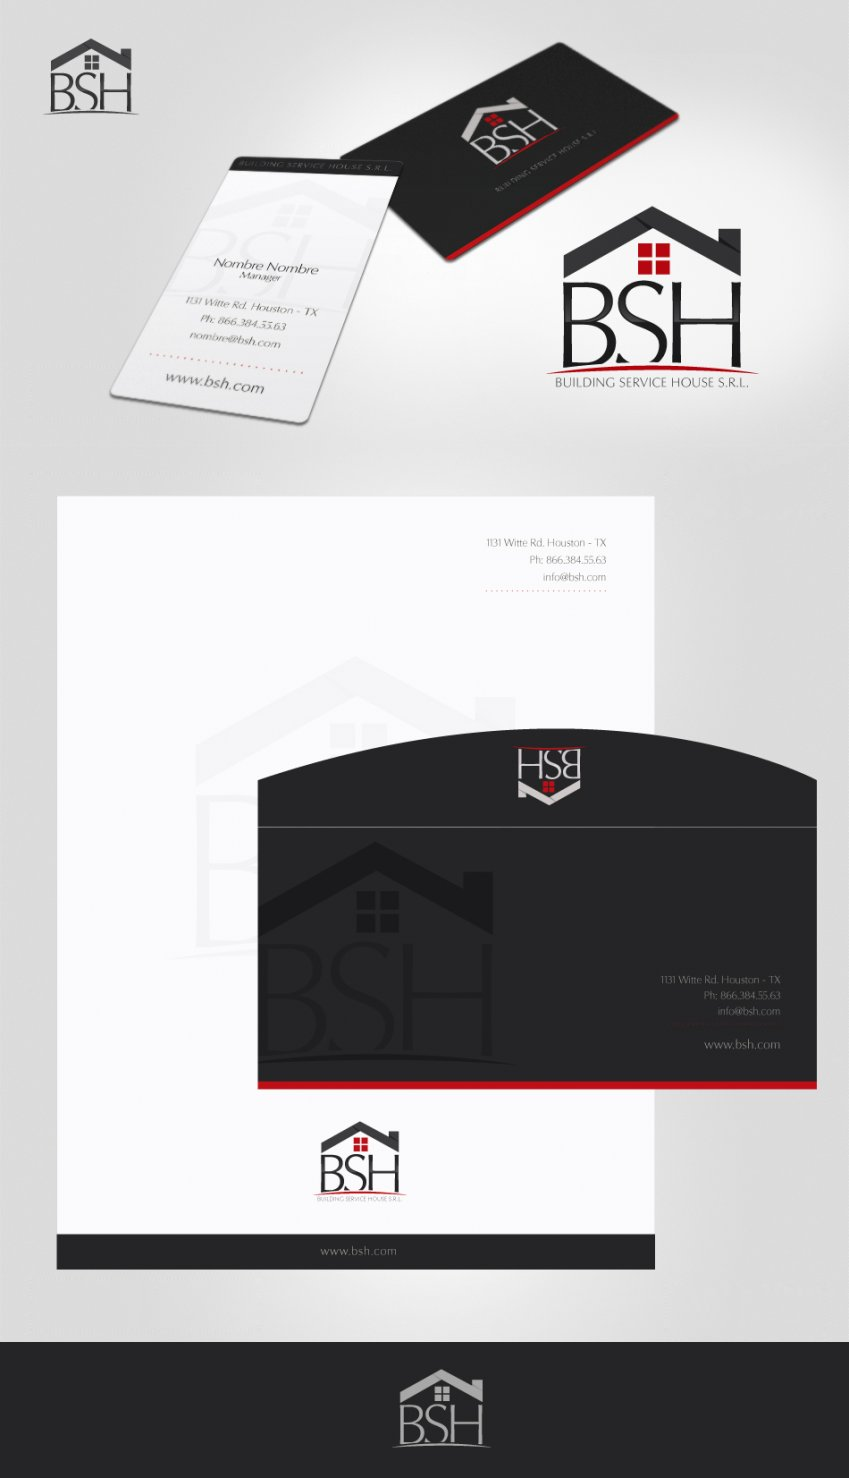 BSH_Stationery